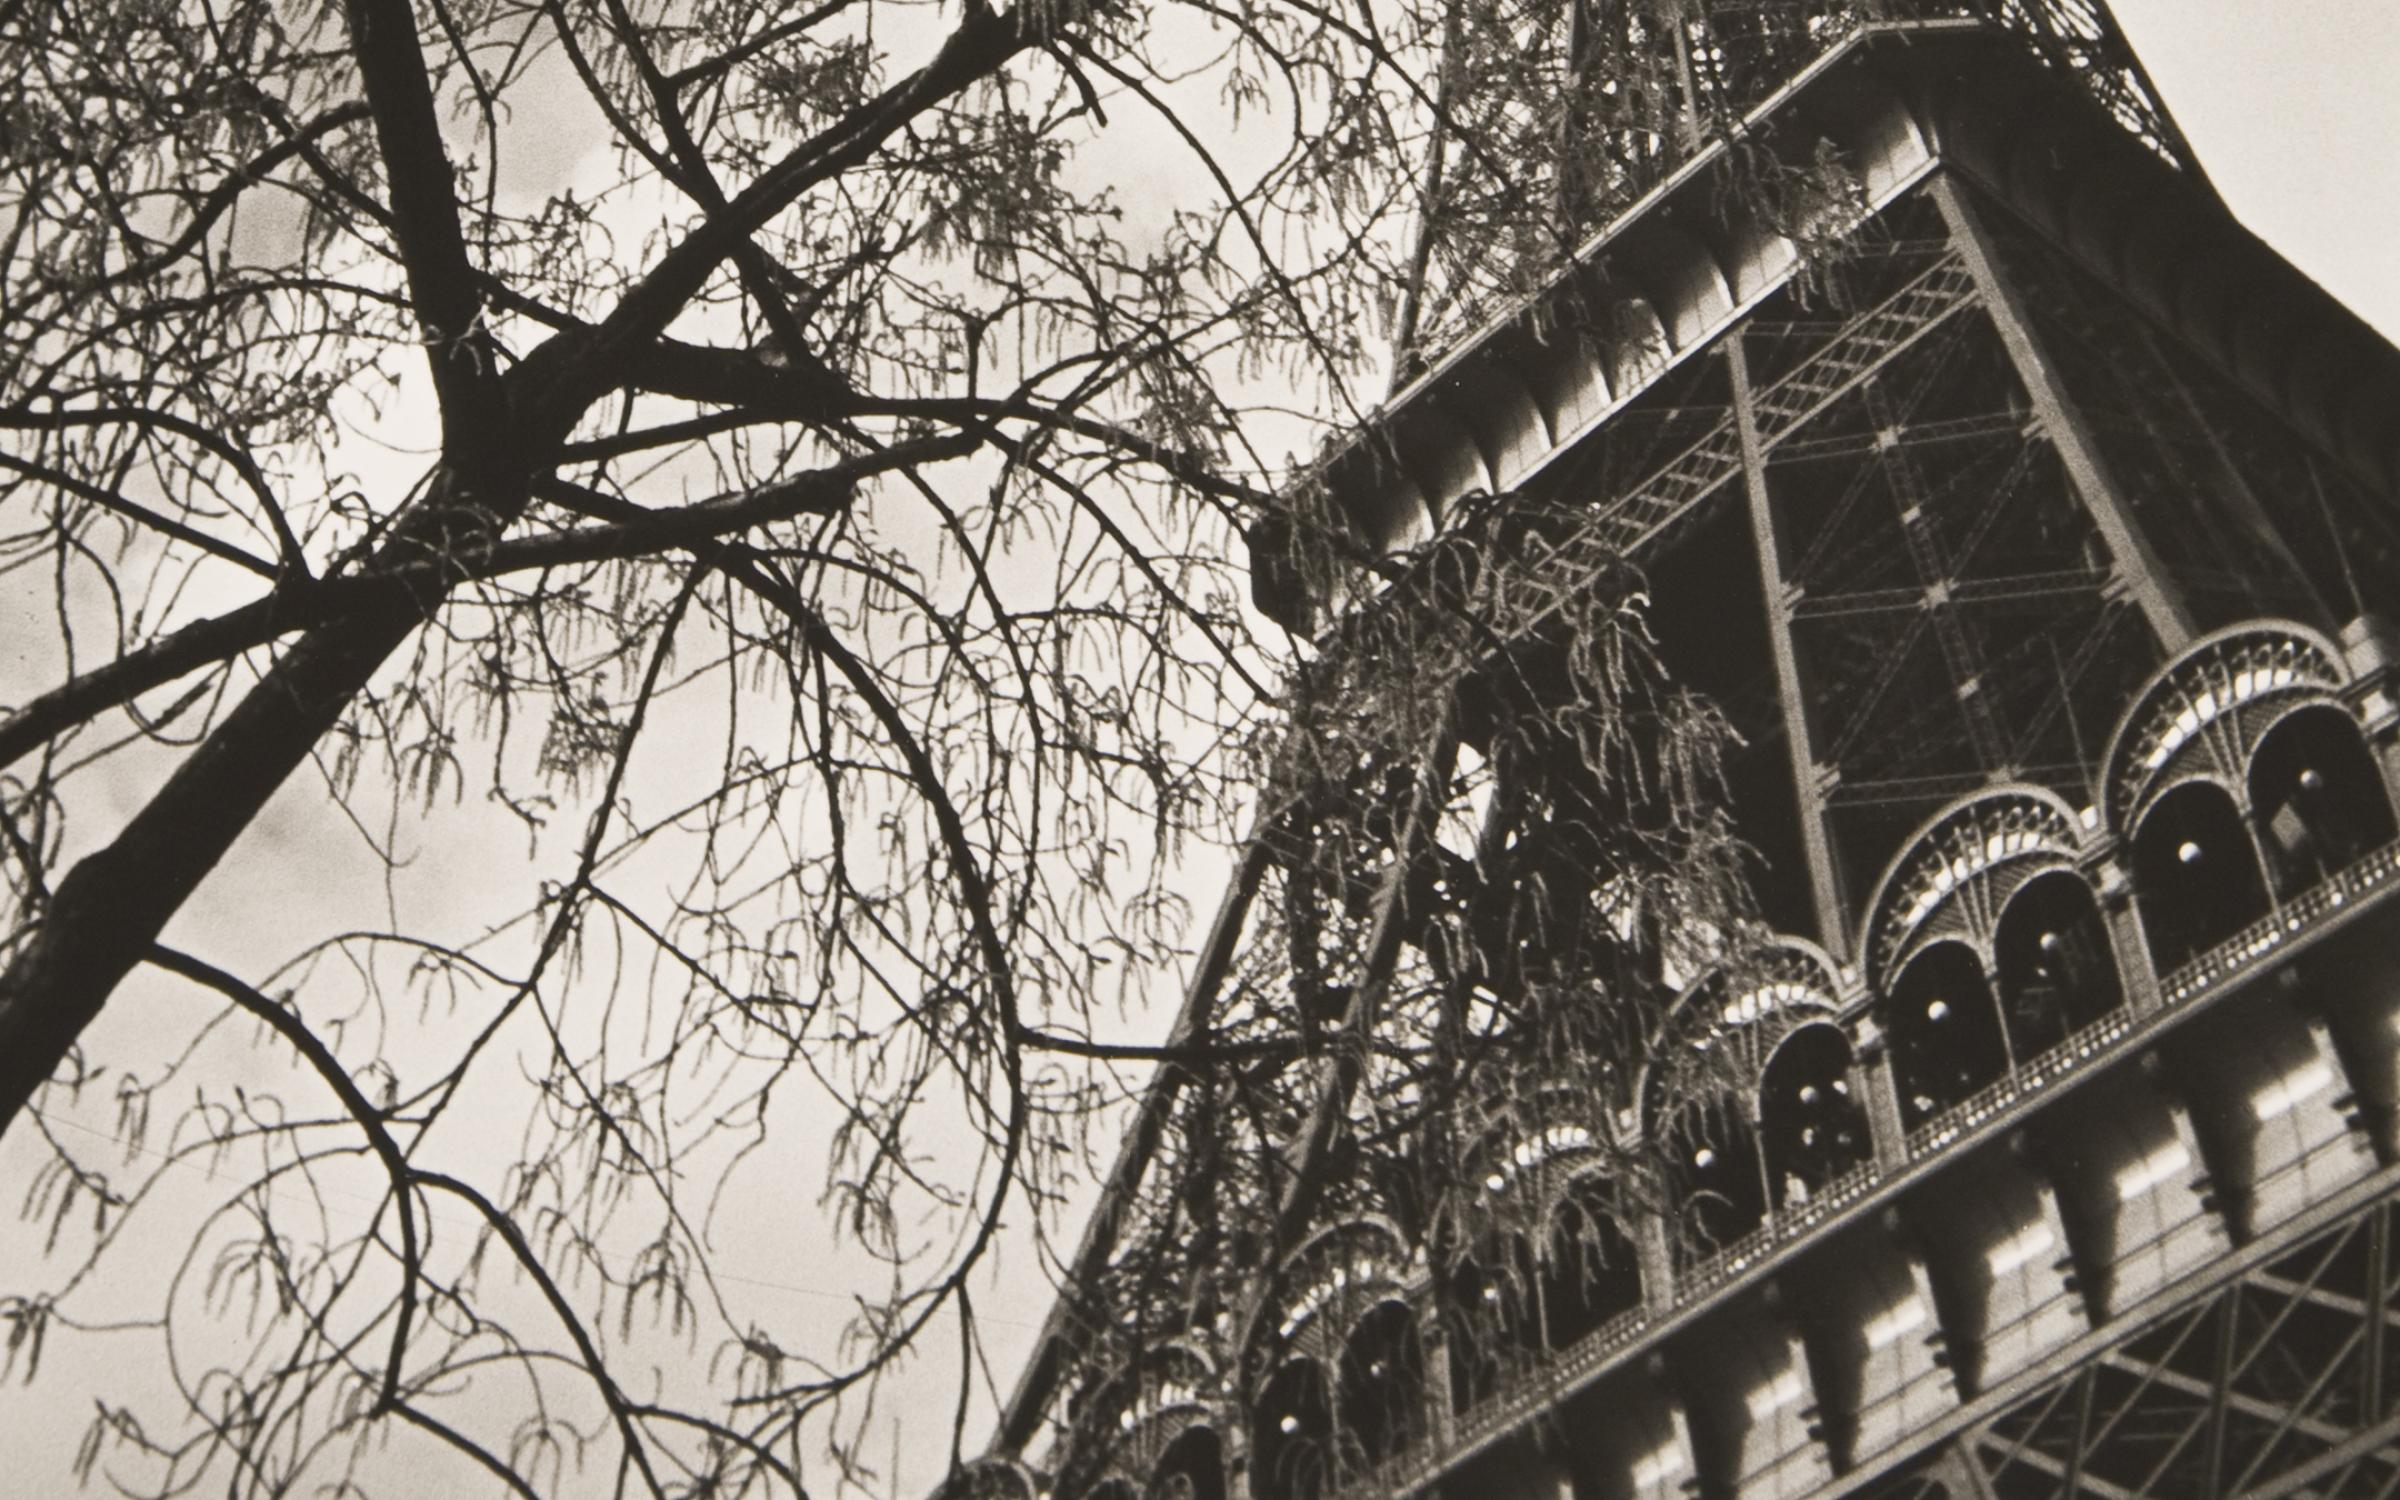 Ilse Bing (German, 1899-1998), Paris, Eiffel Tower with Branches, 1933, printed 1993, gelatin silver print, 13 7/16 in x w: 8 15/16 inches, gift of Dr. Steven K. and Yasemin Miller, UMFA2012.11.8.